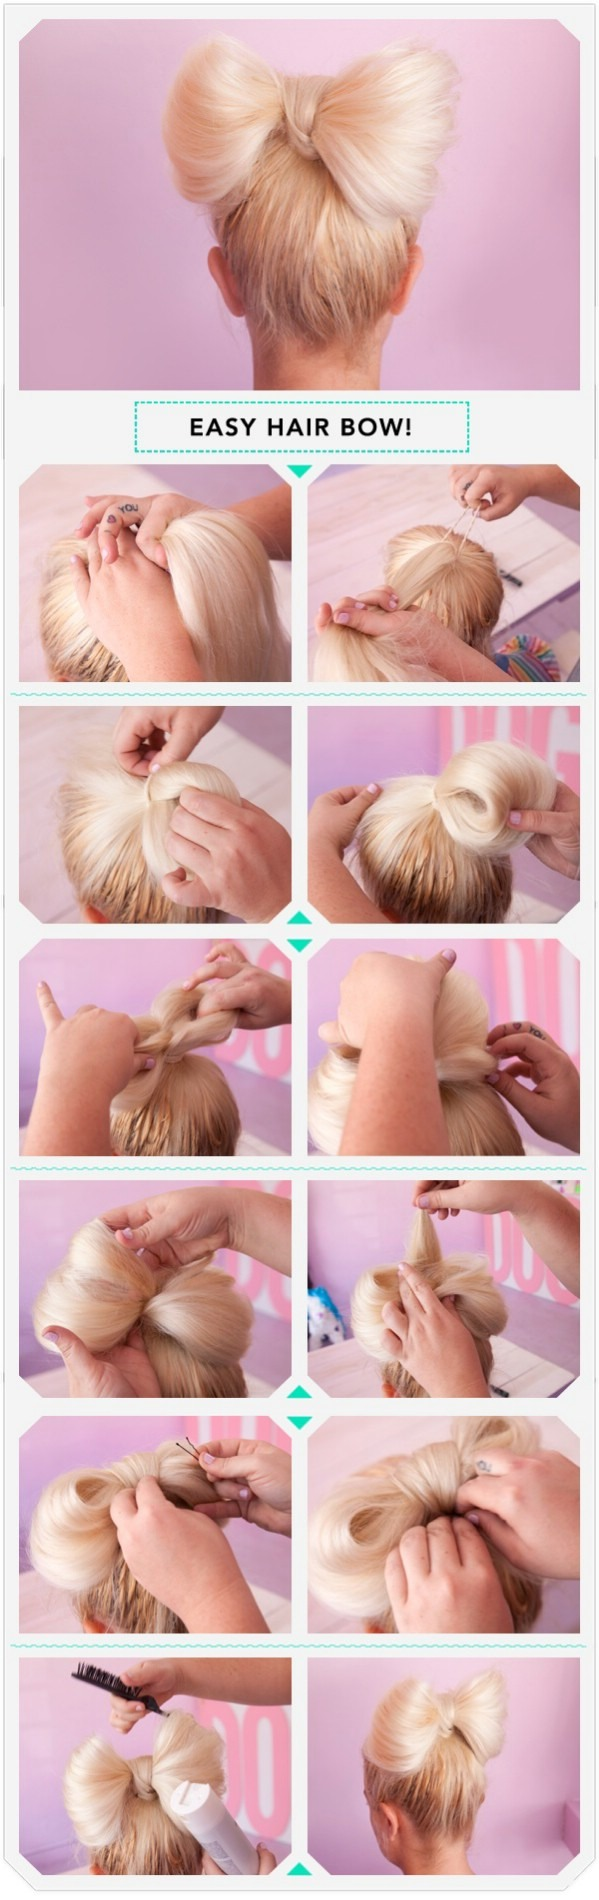 How to bow your hair!